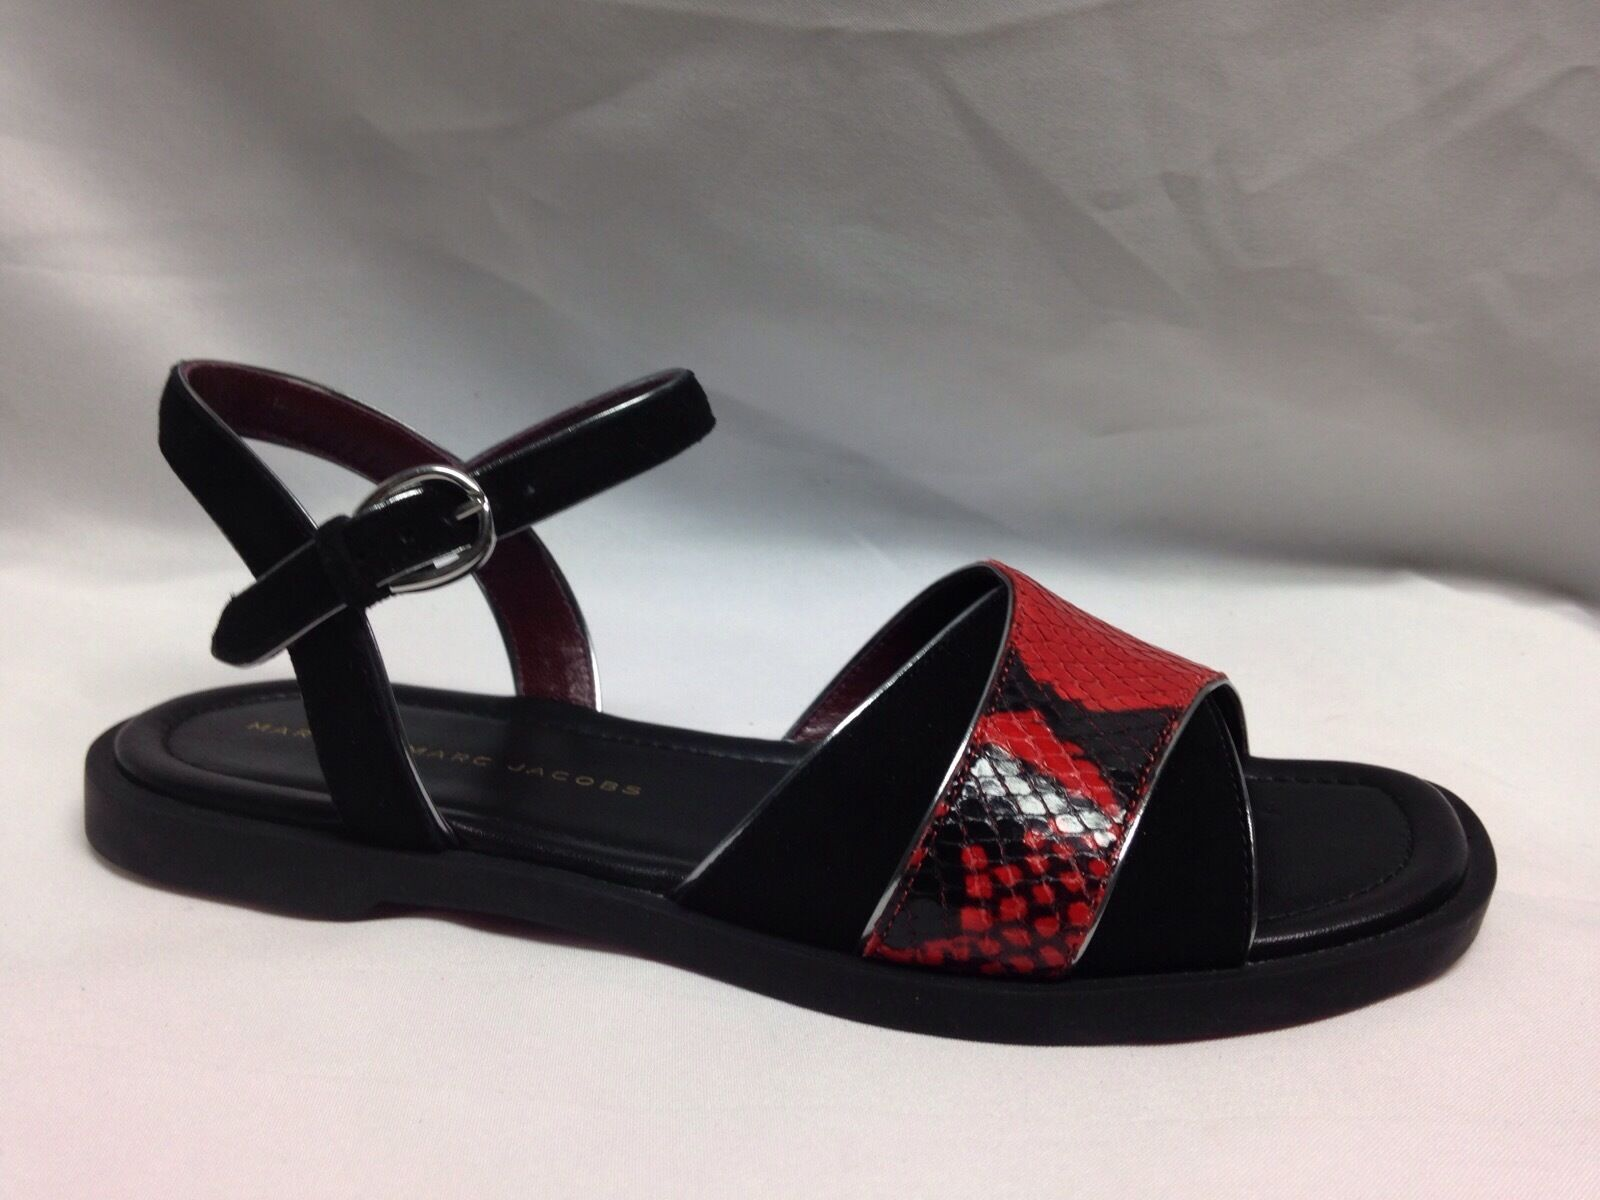 Marc Jacobs Ankle Strap Sandal 6.5 Red M9000661  New New New w  Box 554f91